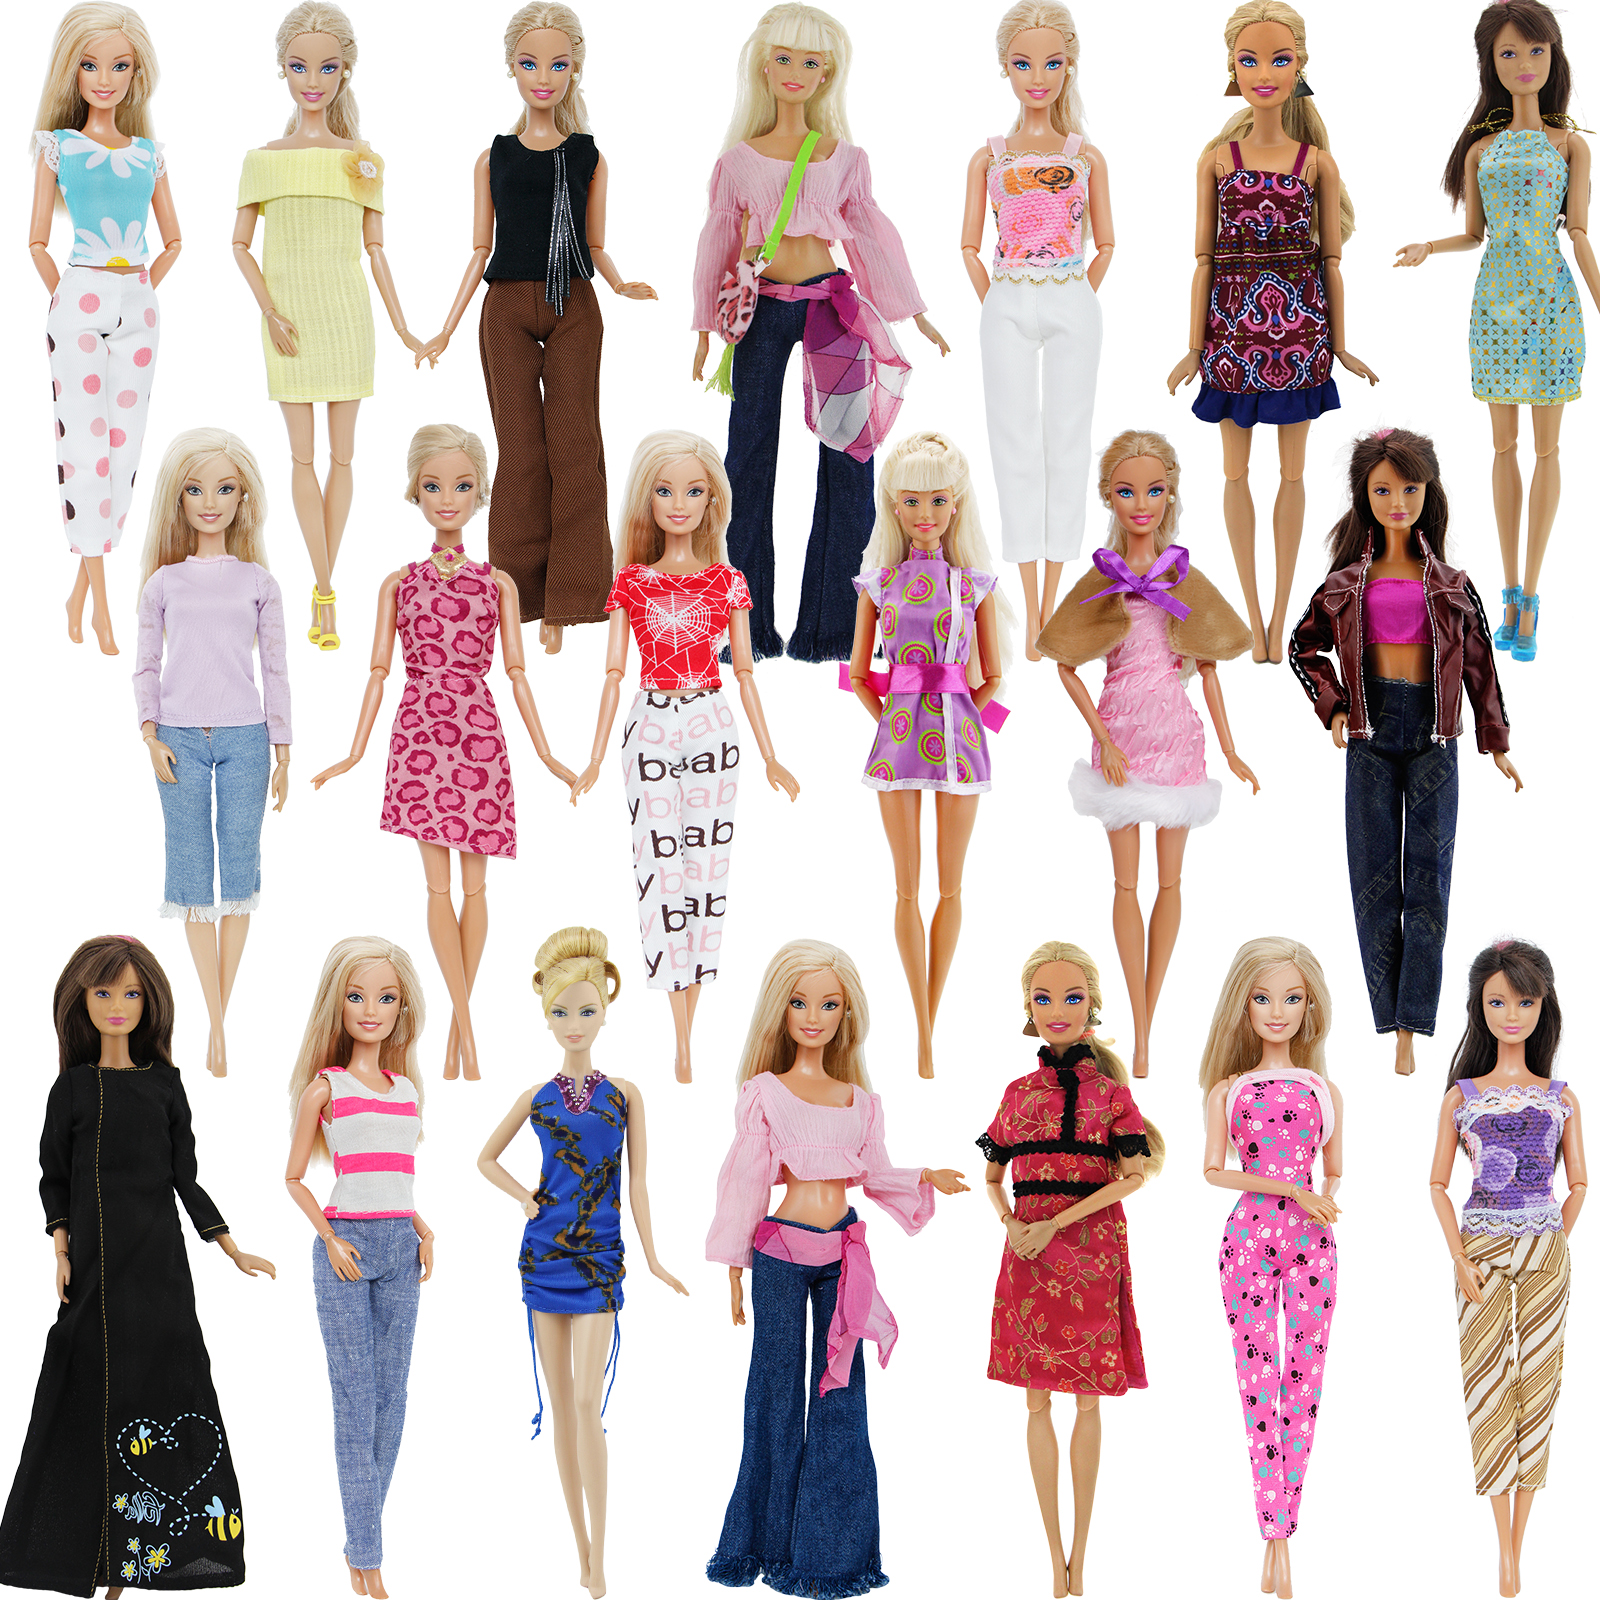 Wholesale 5/2 Set Mix Lady Girl Outfit Dress Skirt Vest Shirt Top Pants Blouse Trousers Clothes For Barbie Doll Accessories